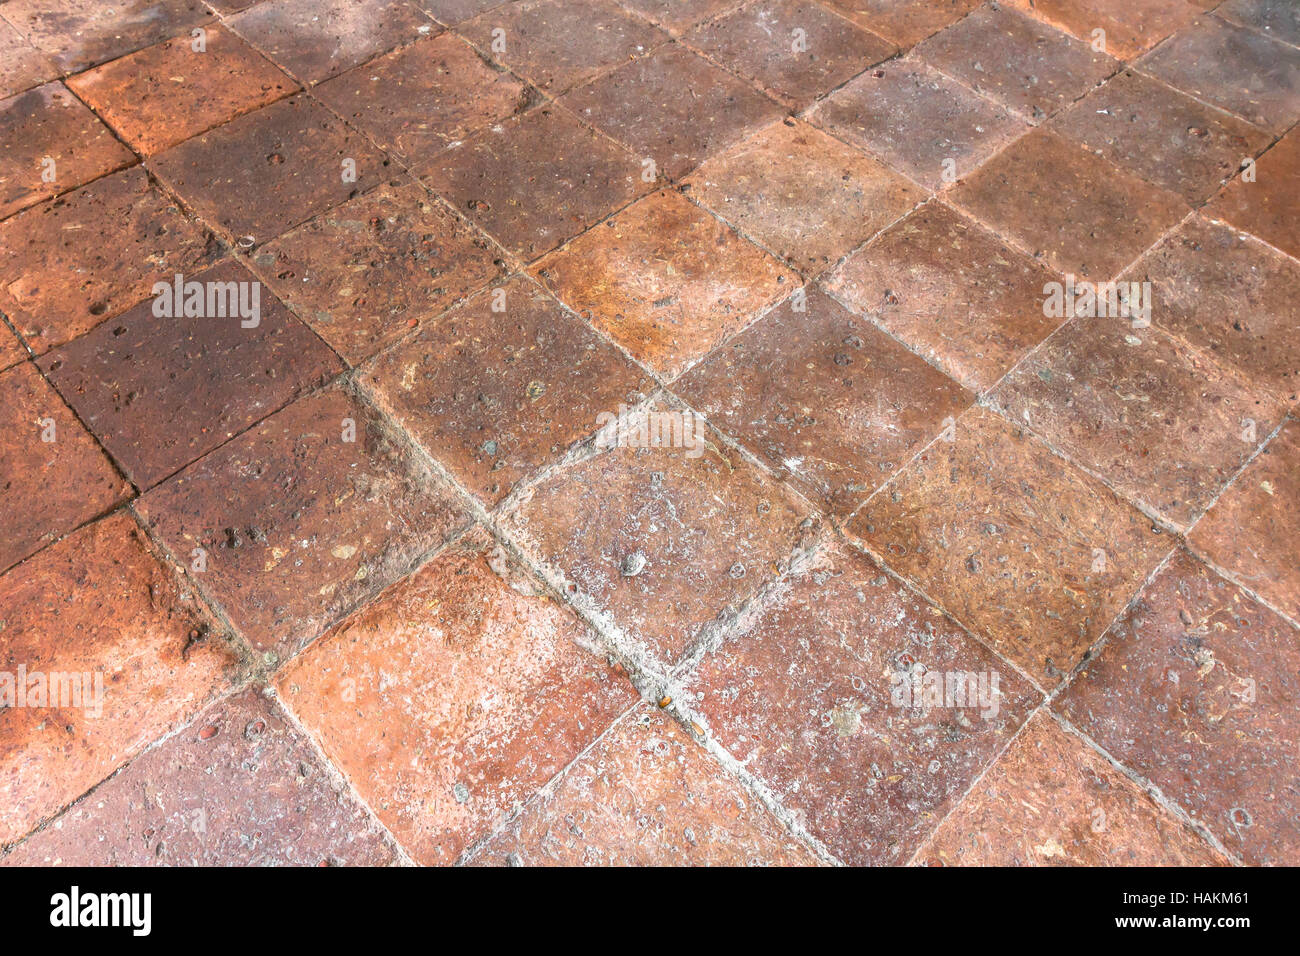 Terracotta floor with old tiles inside an italian country house terracotta floor with old tiles inside an italian country house dailygadgetfo Choice Image